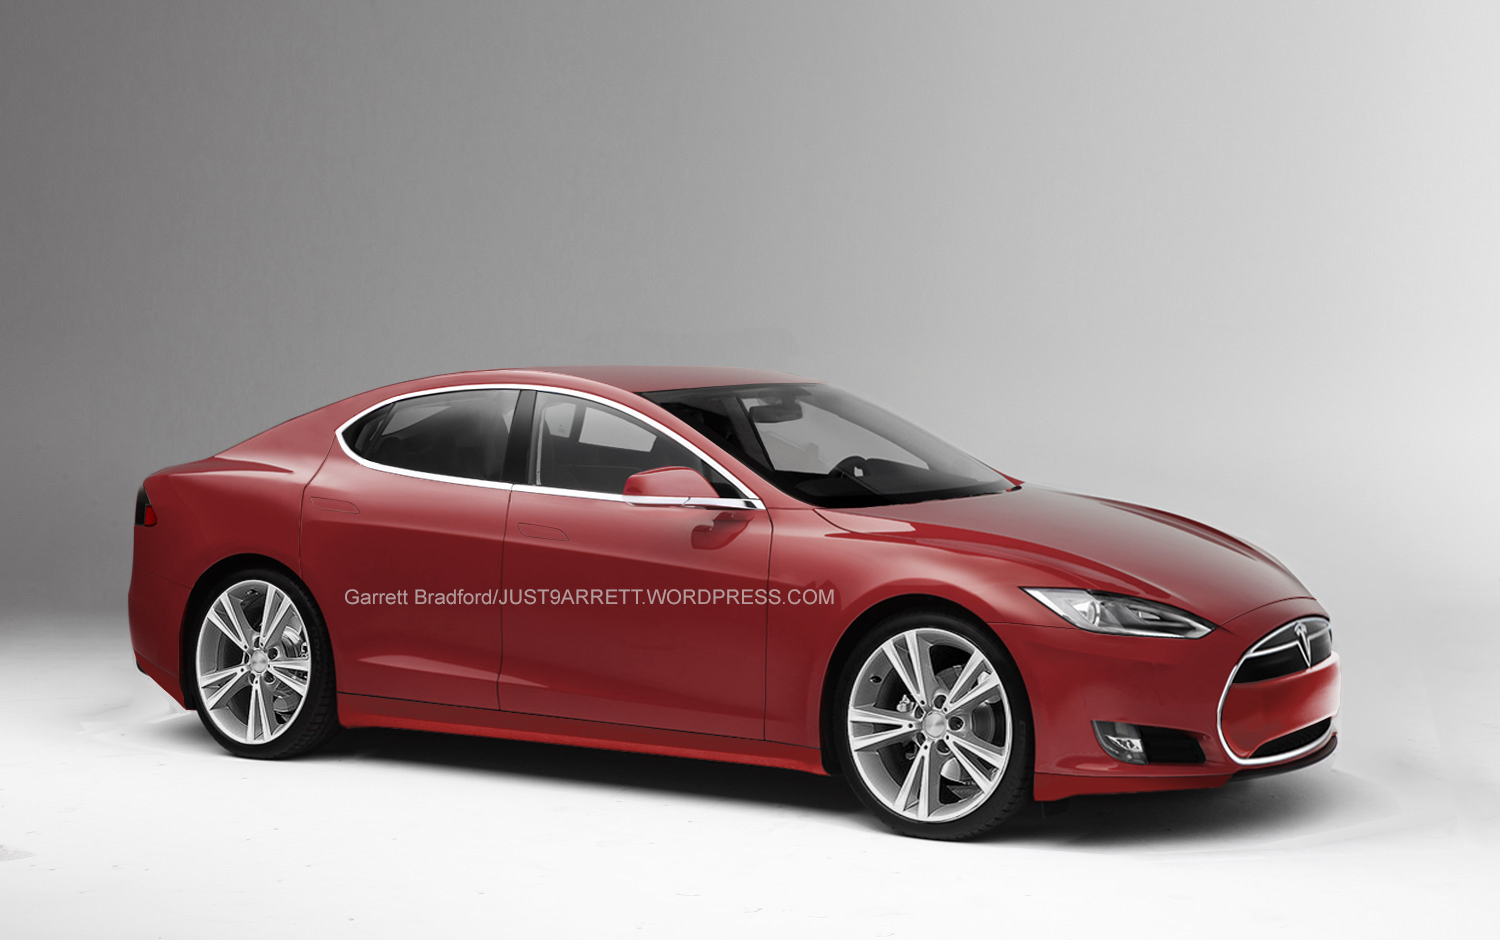 Tesla Model E Production Just9arrett